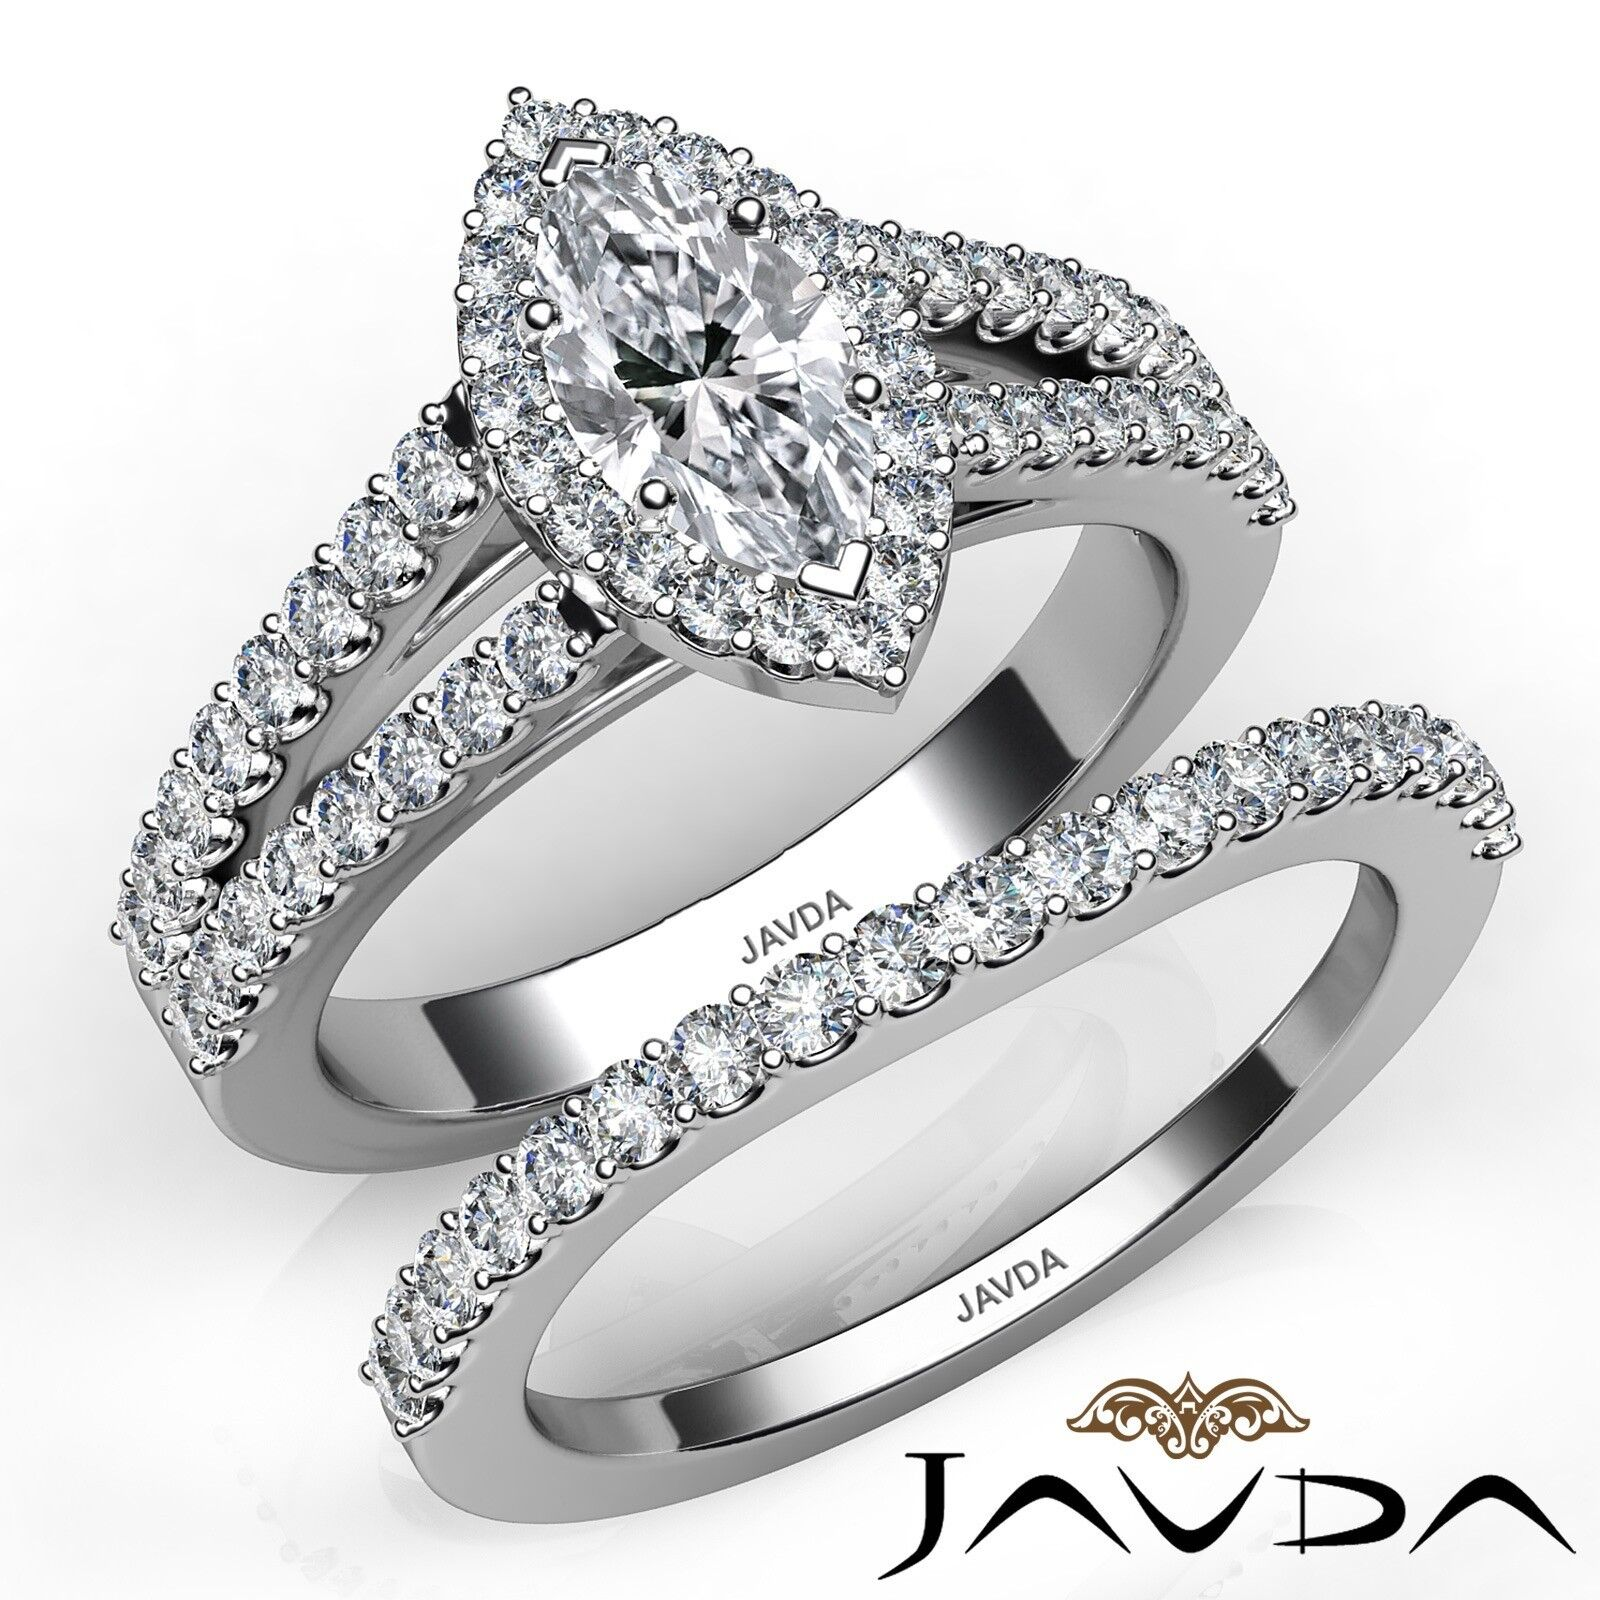 1.95ct Modern Halo Bridal Set Marquise Diamond Engagement Ring GIA E-VVS2 W Gold